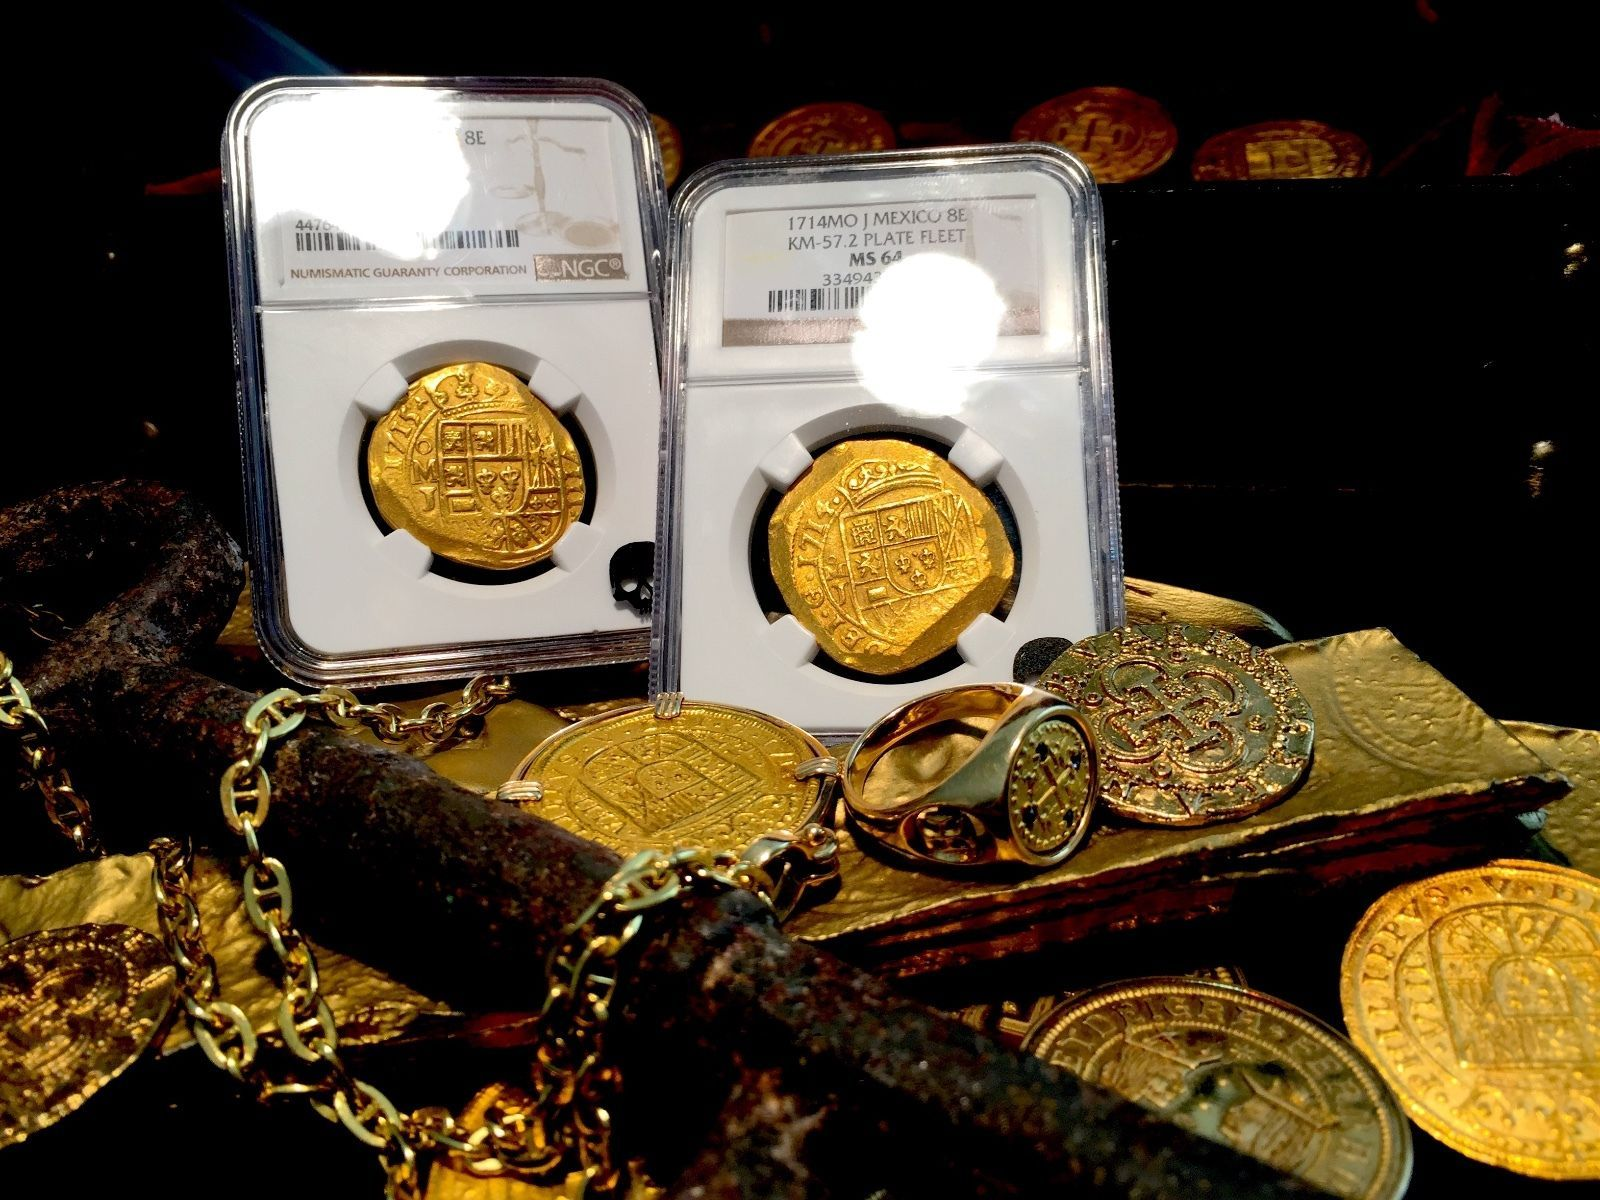 "MEXICO 1715 ""FULL DATE FLEET SHIPWRECK"" 8 ESCUDOS NGC 58 GOLD COB TREASURE COIN"